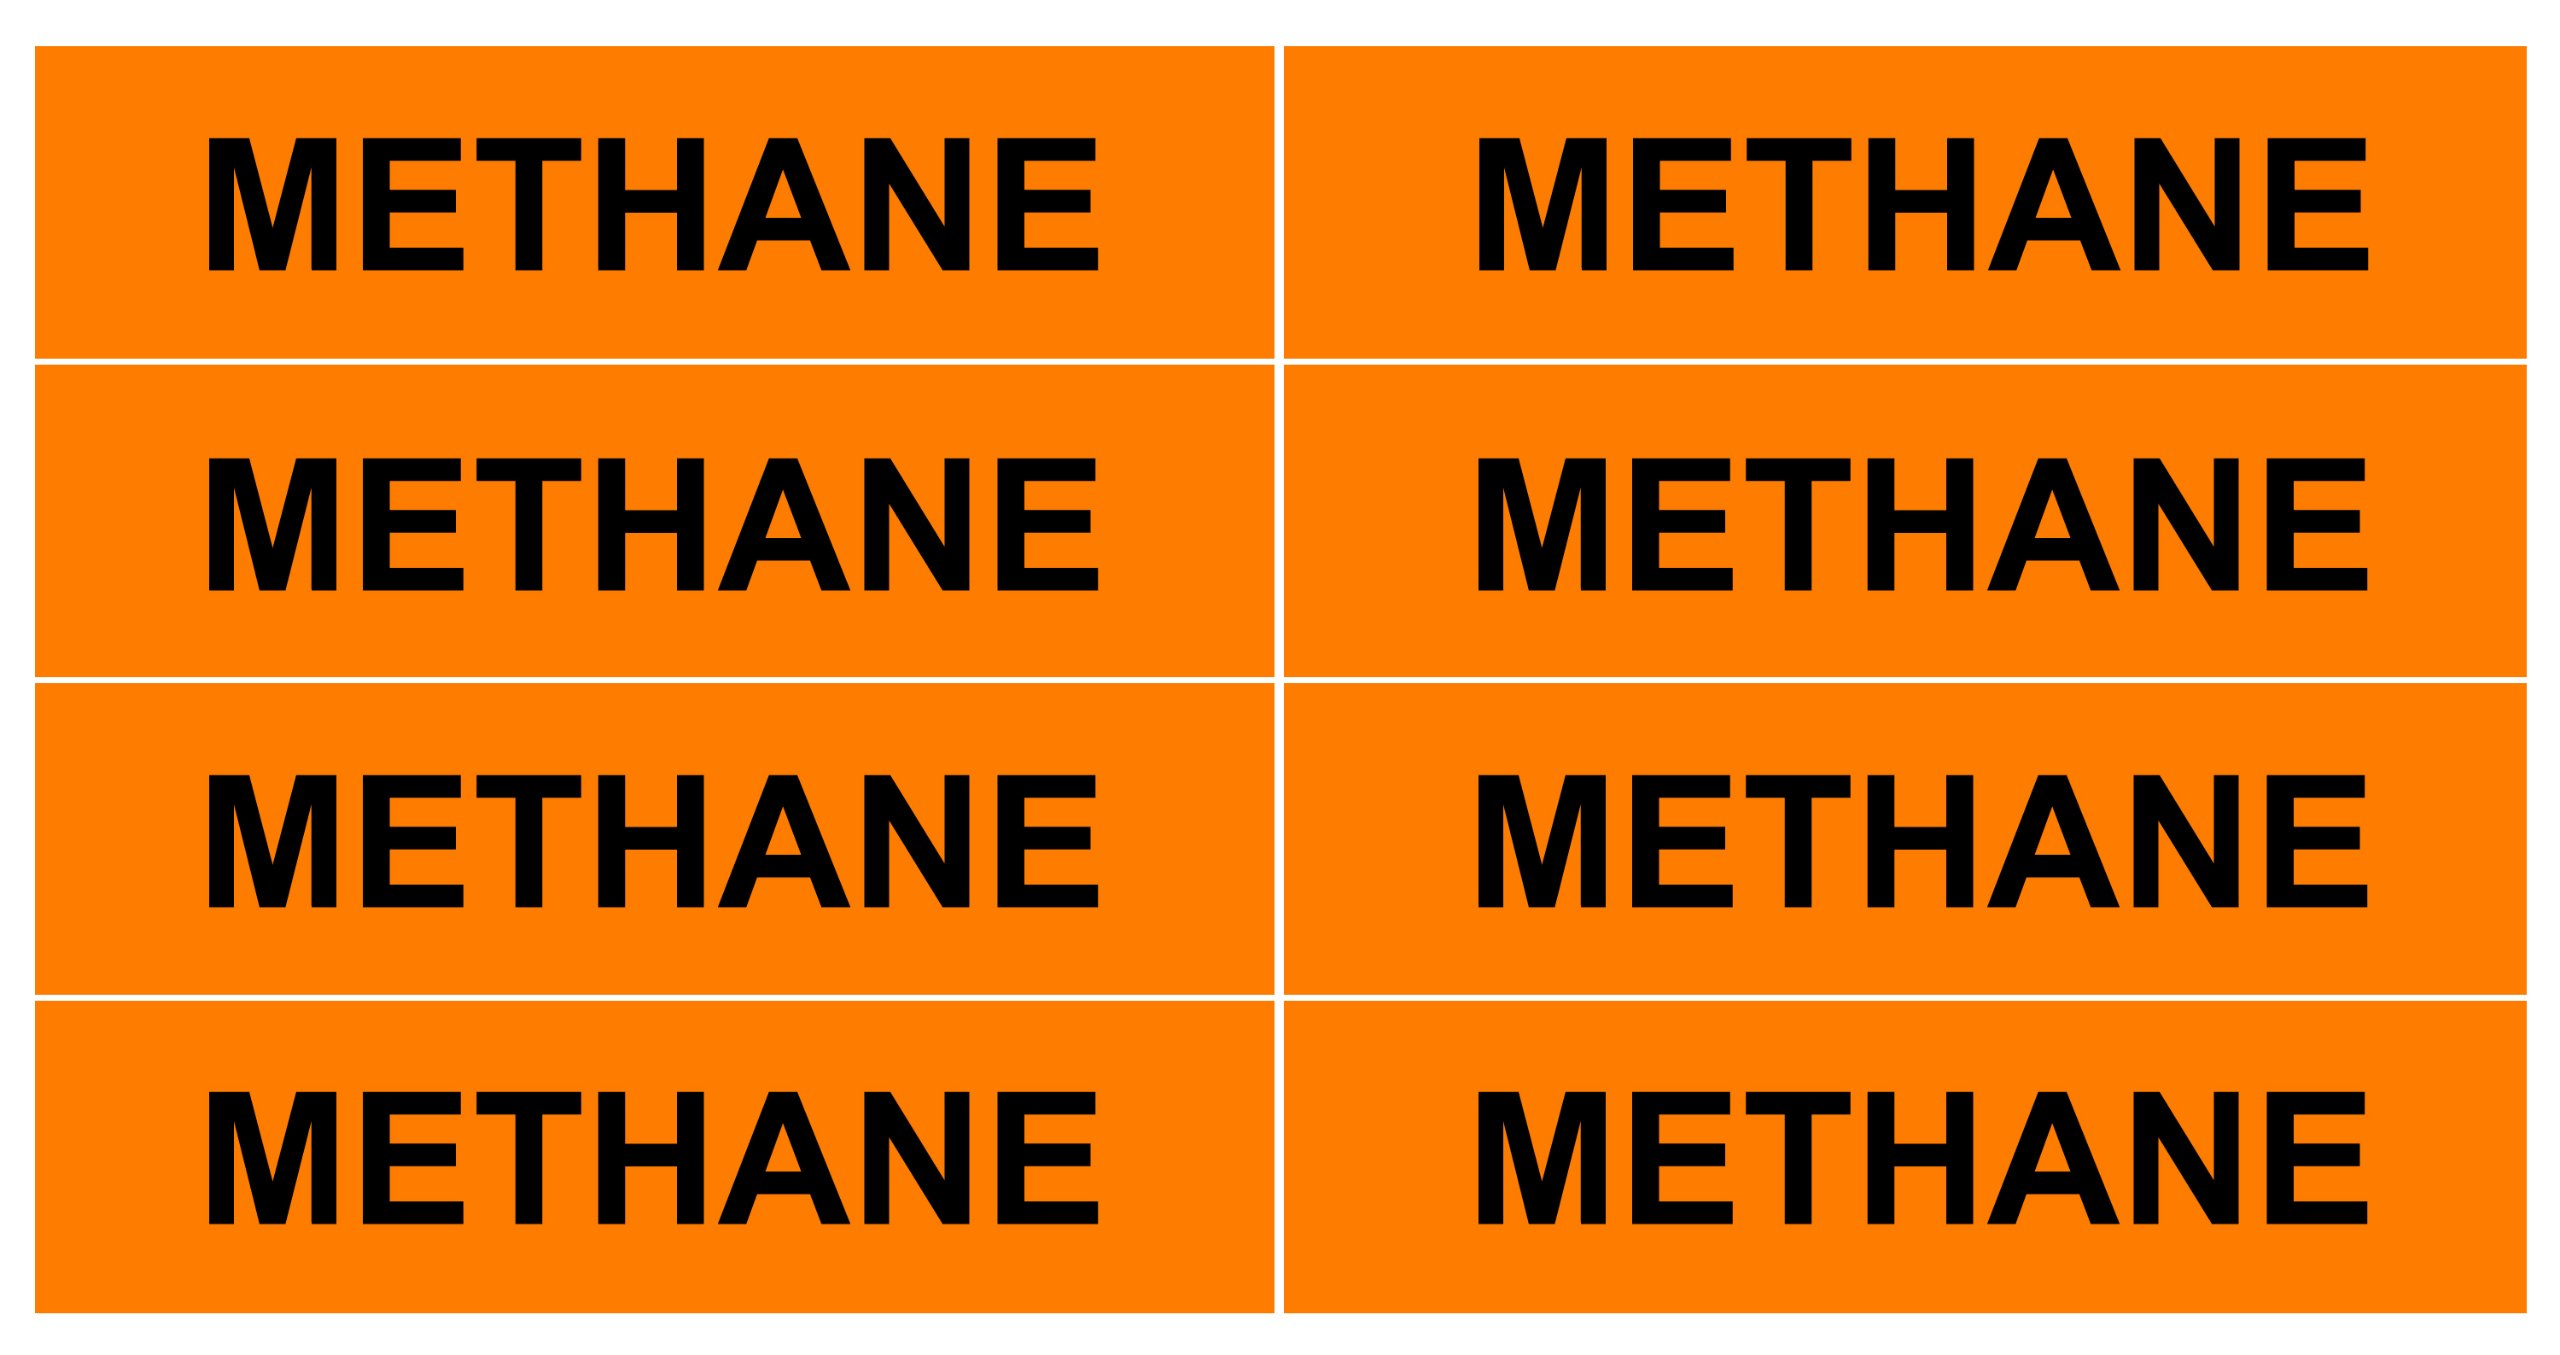 METHANE_Gas Pipe Tubing Labels_ <PACKAGE OF 16 LABELS> 3/4'' Height, 3'' Width, Black Letters on Orange Background, TEMPO GAS SYSTEMS High-visibility, Industry-standard Information and Safety Labels